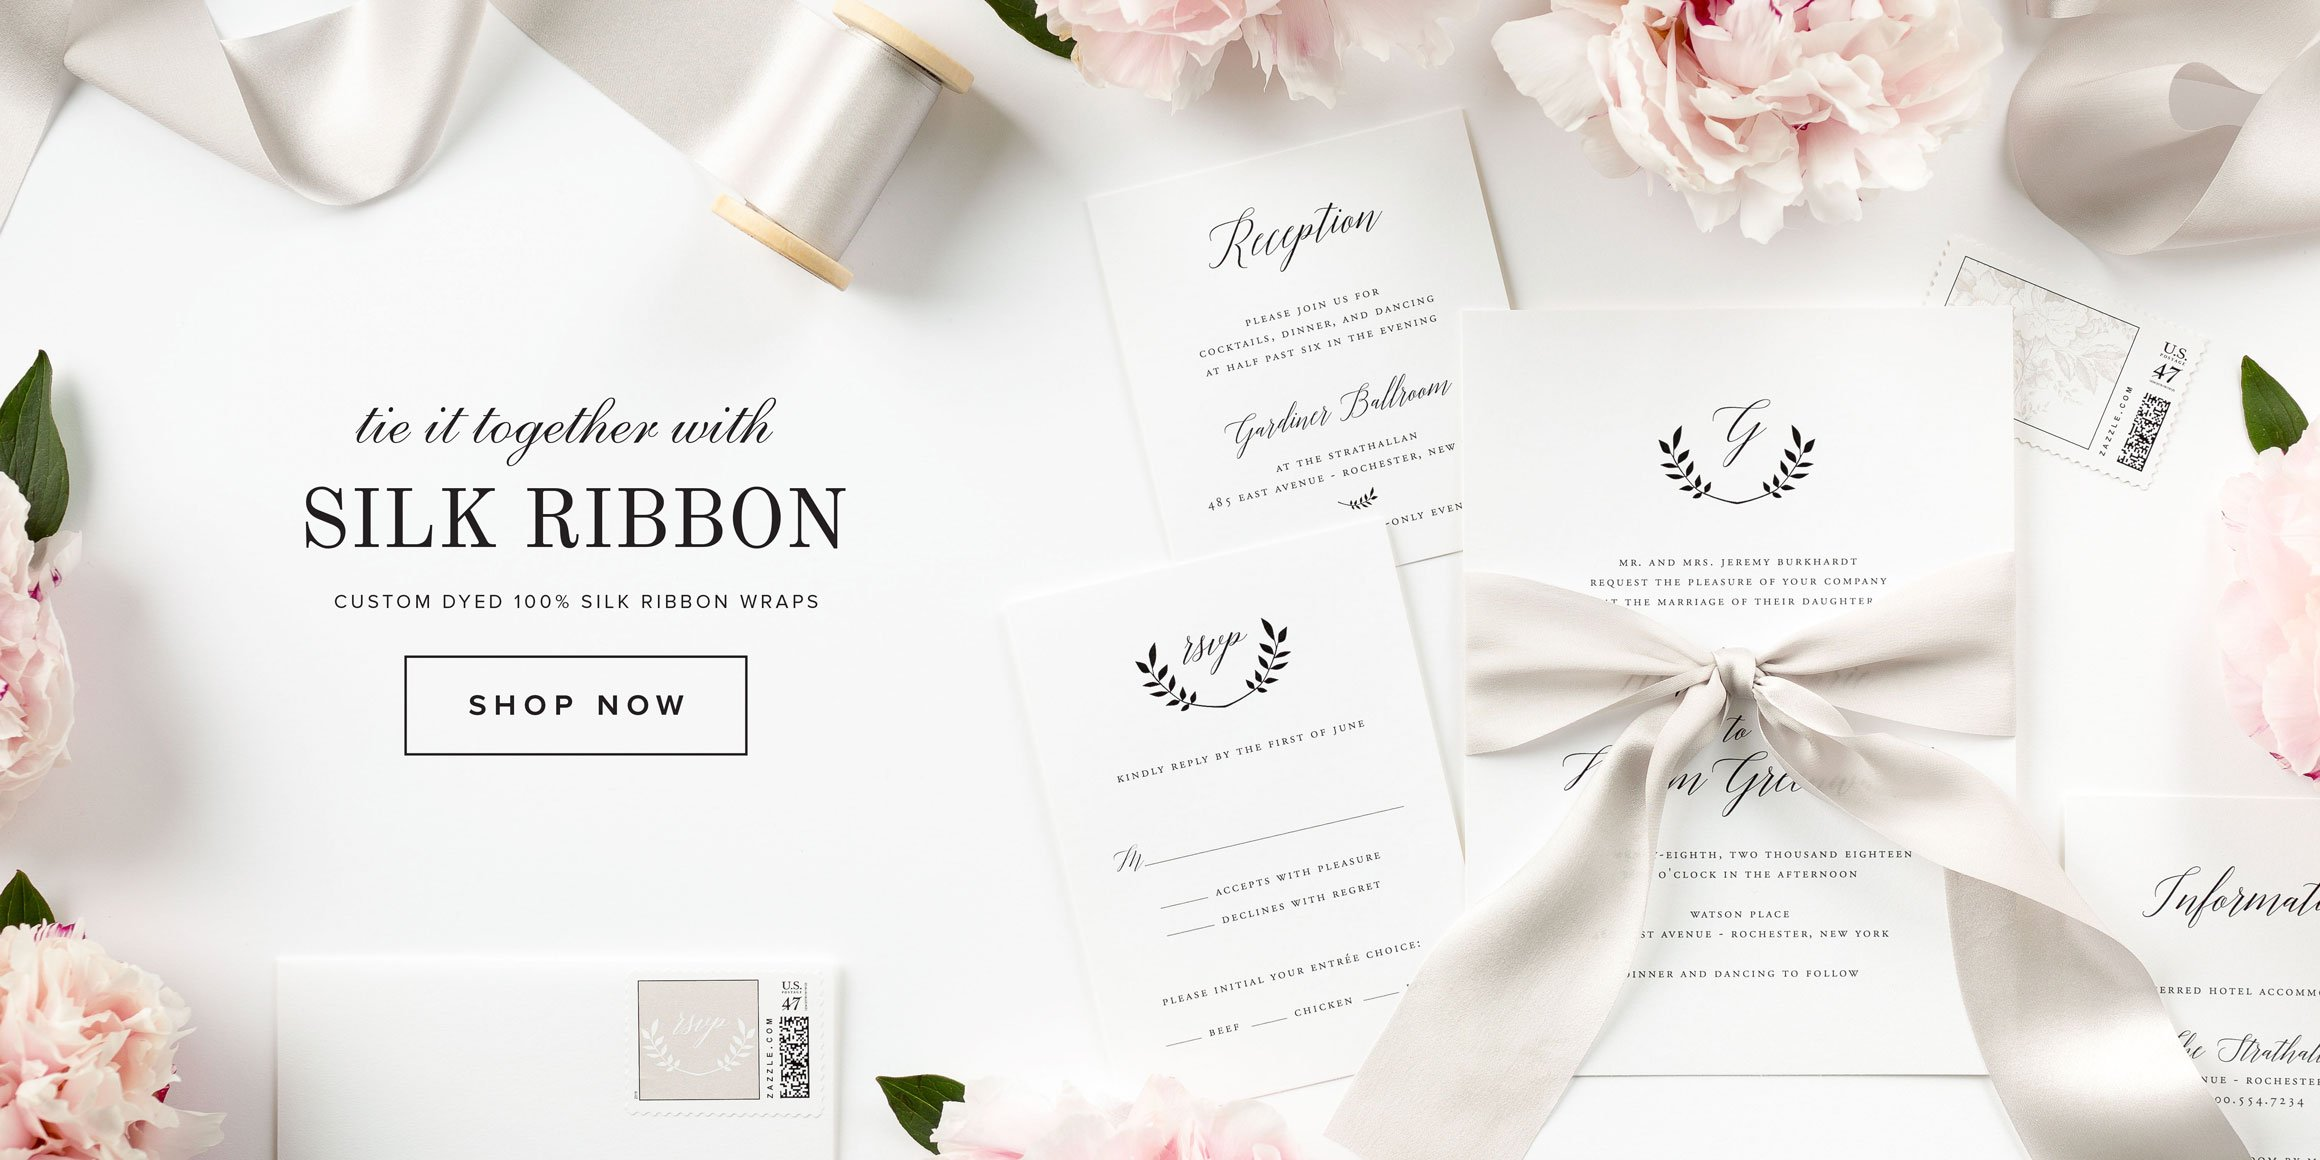 Wedding Invitations Cute was good invitation ideas